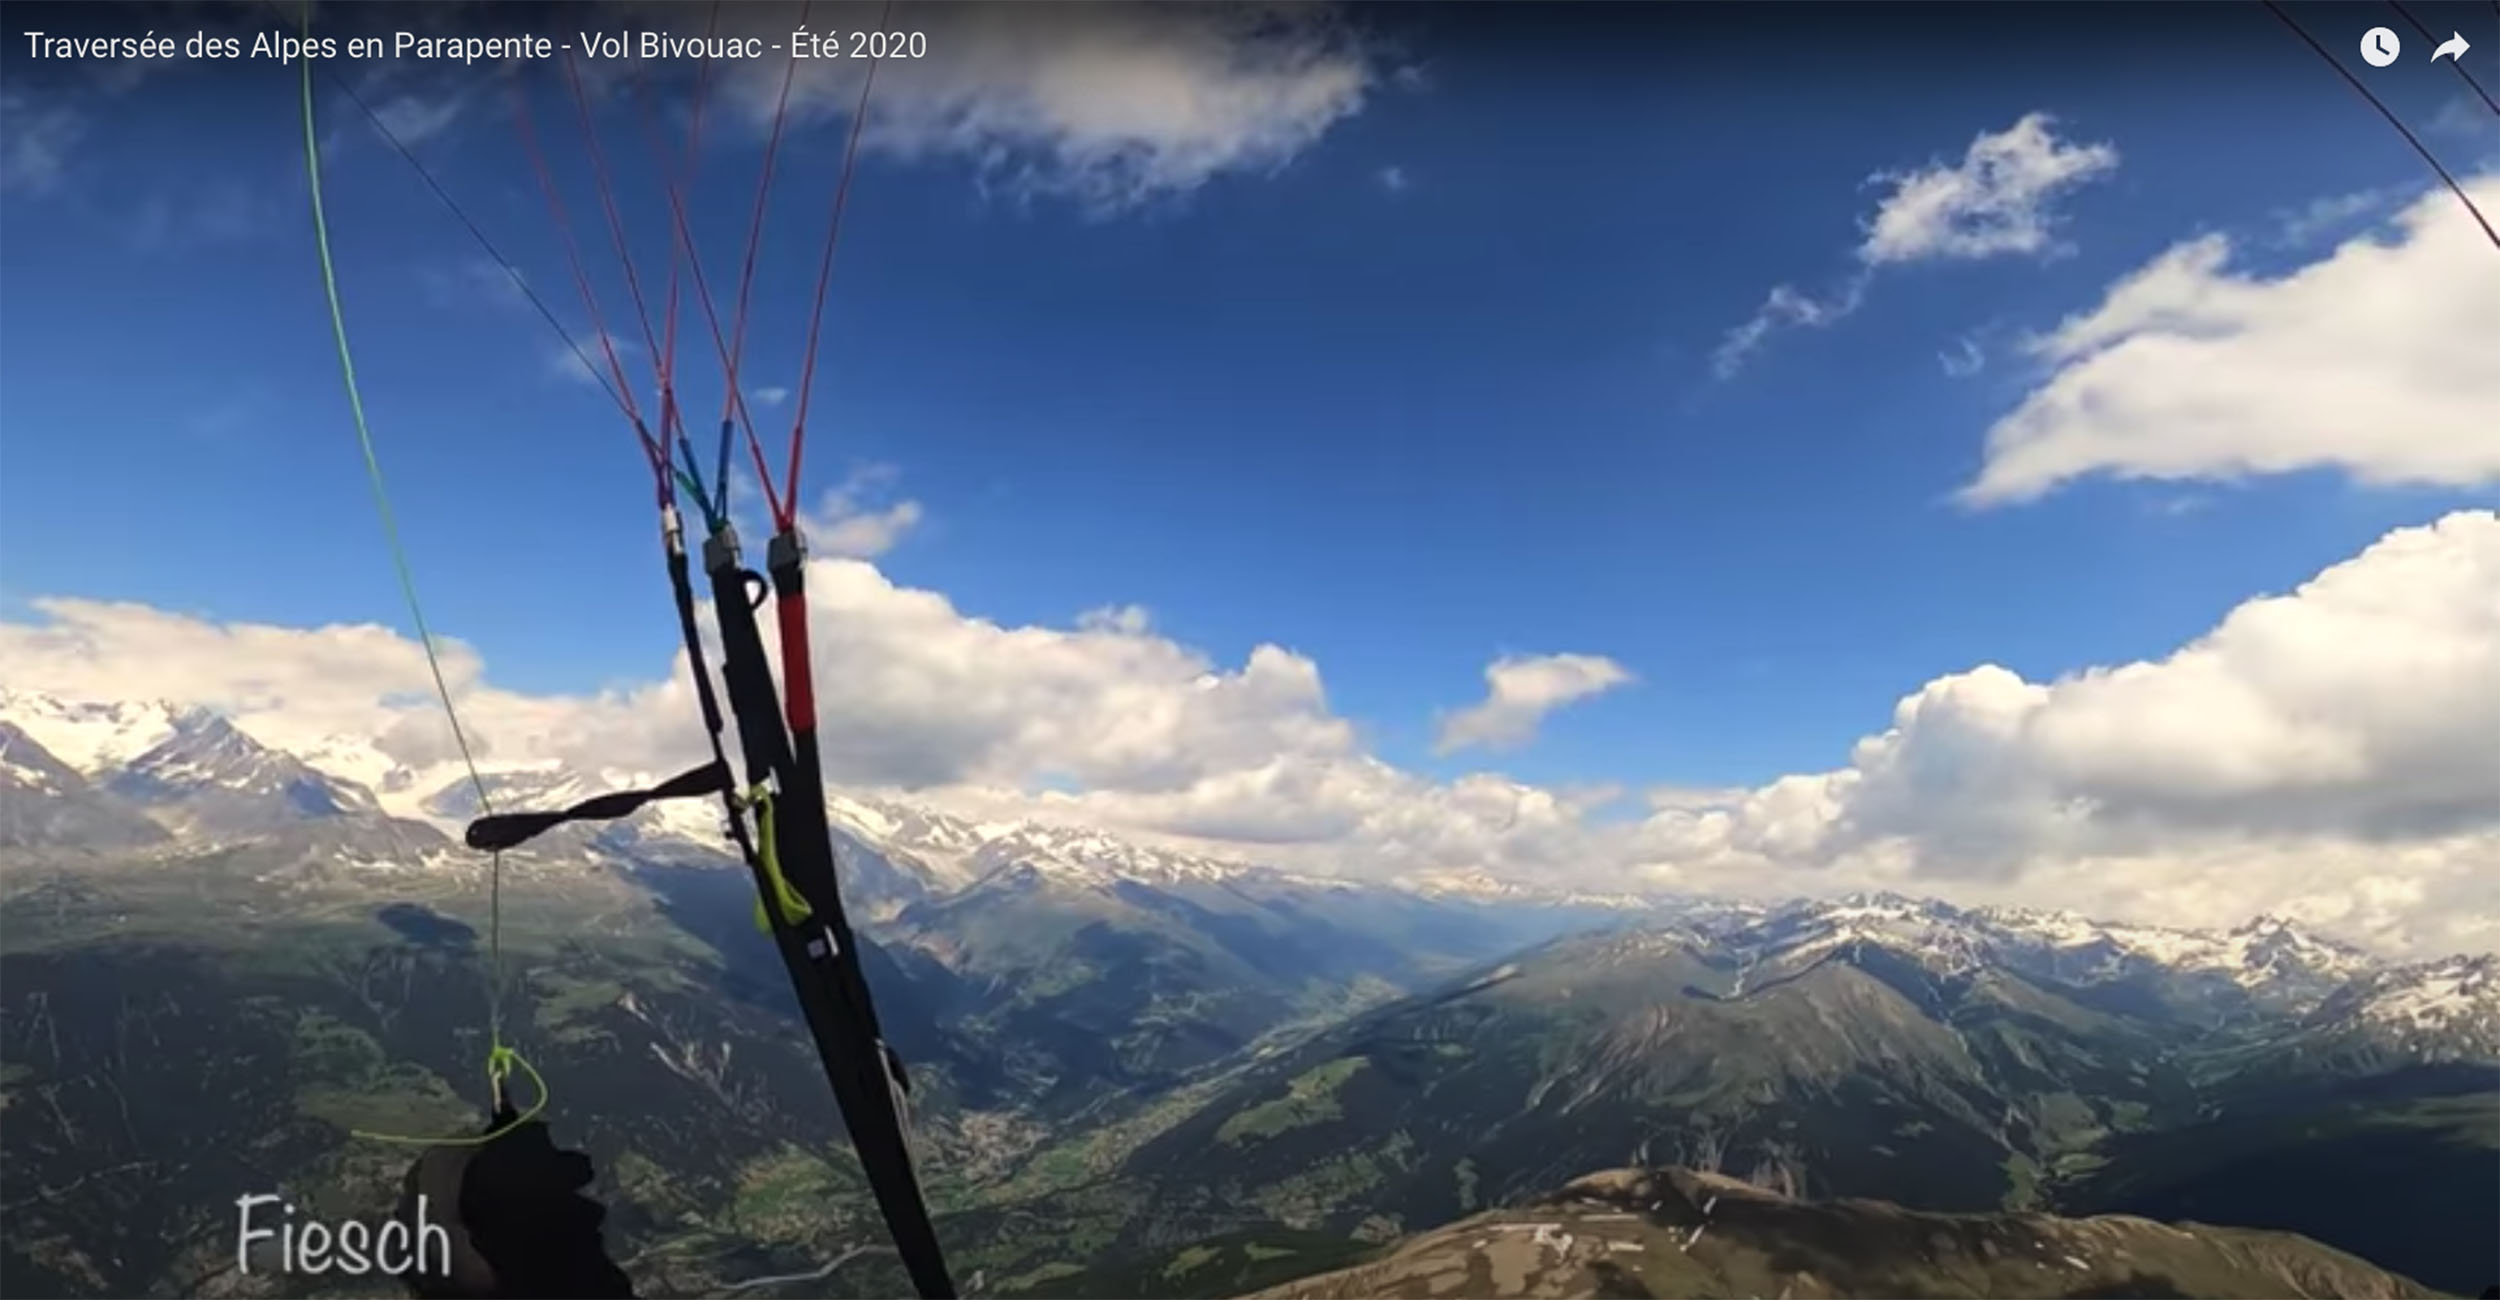 Paragliding-Traverse-The-Alps-2500